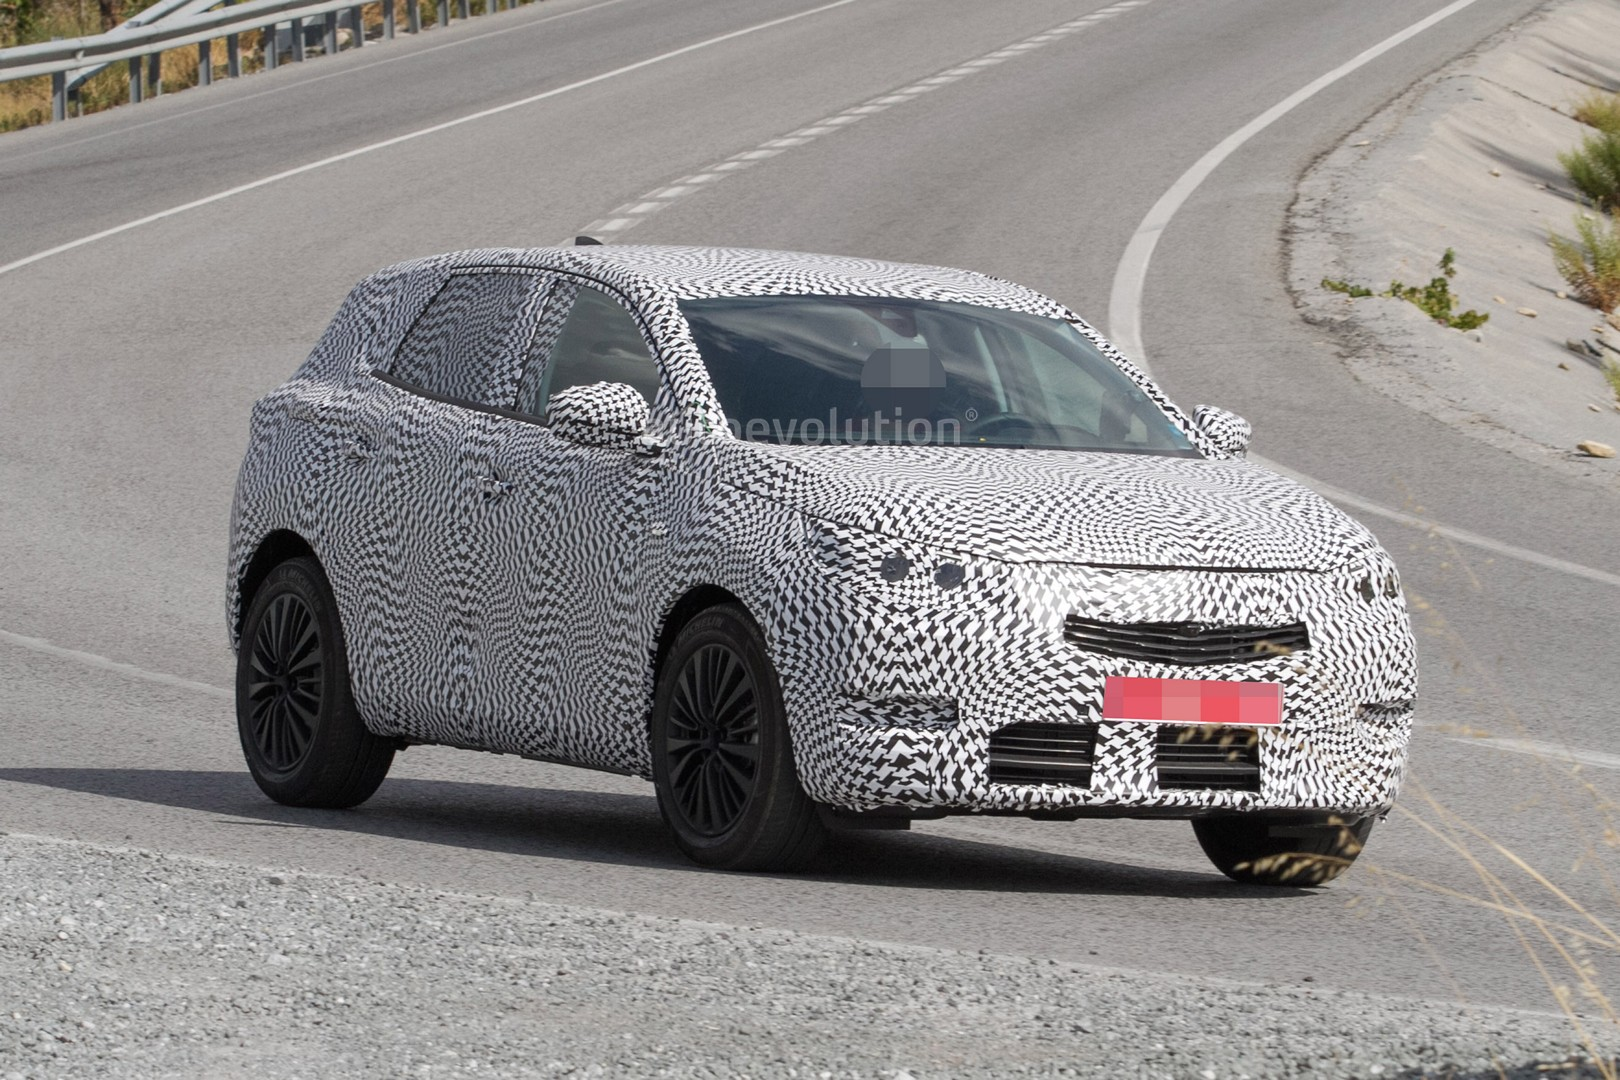 Spyshots 2018 Peugeot 2008 Spy Photo Debut Or Opel C Suv